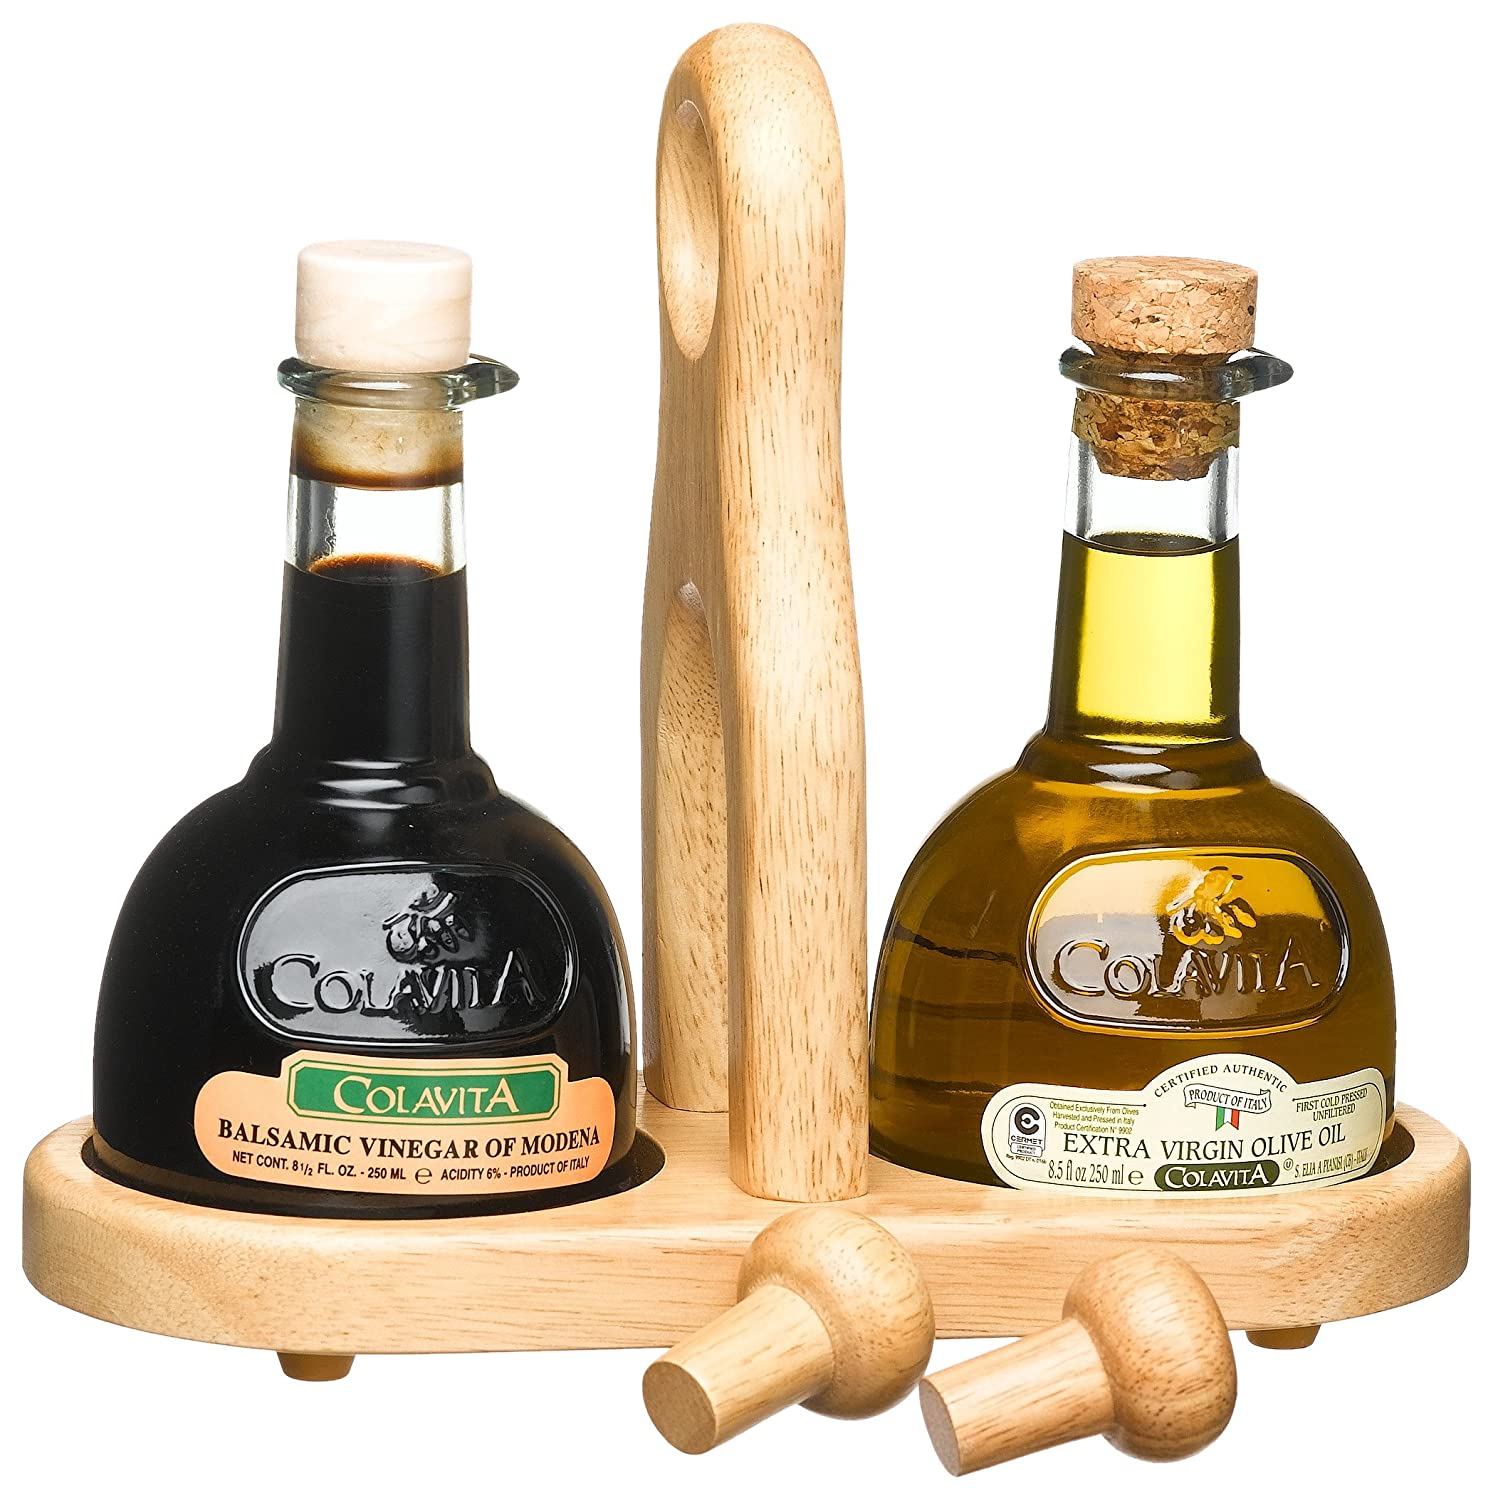 amazoncom  colavita extra virgin olive oil and balsamic vinegar  - amazoncom  colavita extra virgin olive oil and balsamic vinegar cruet sets(pack of )  grocery  gourmet food